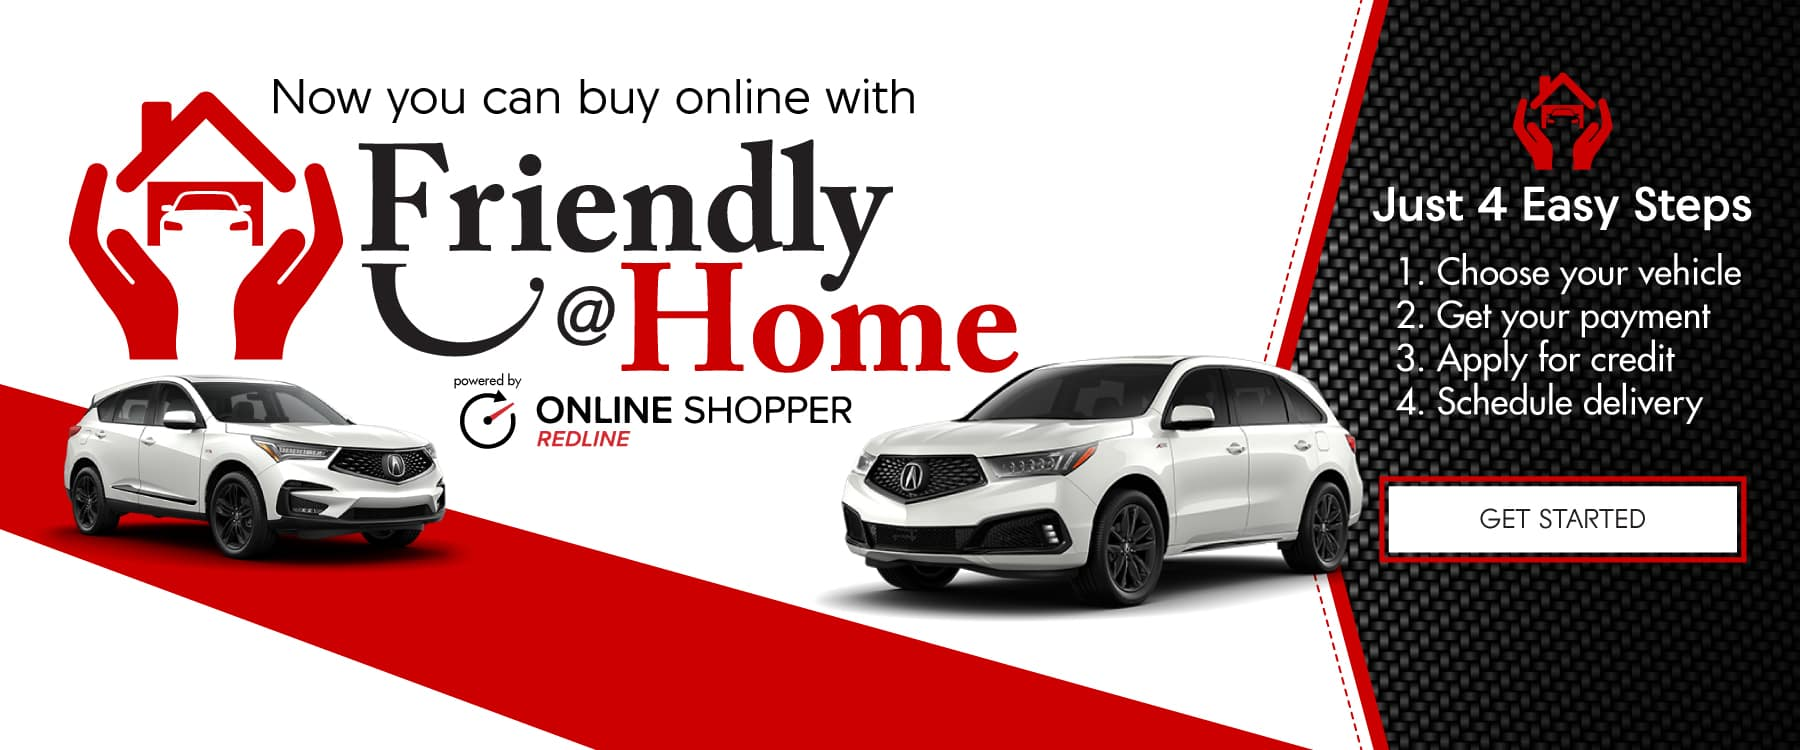 Buy-Online-with-Friendly-At-Home